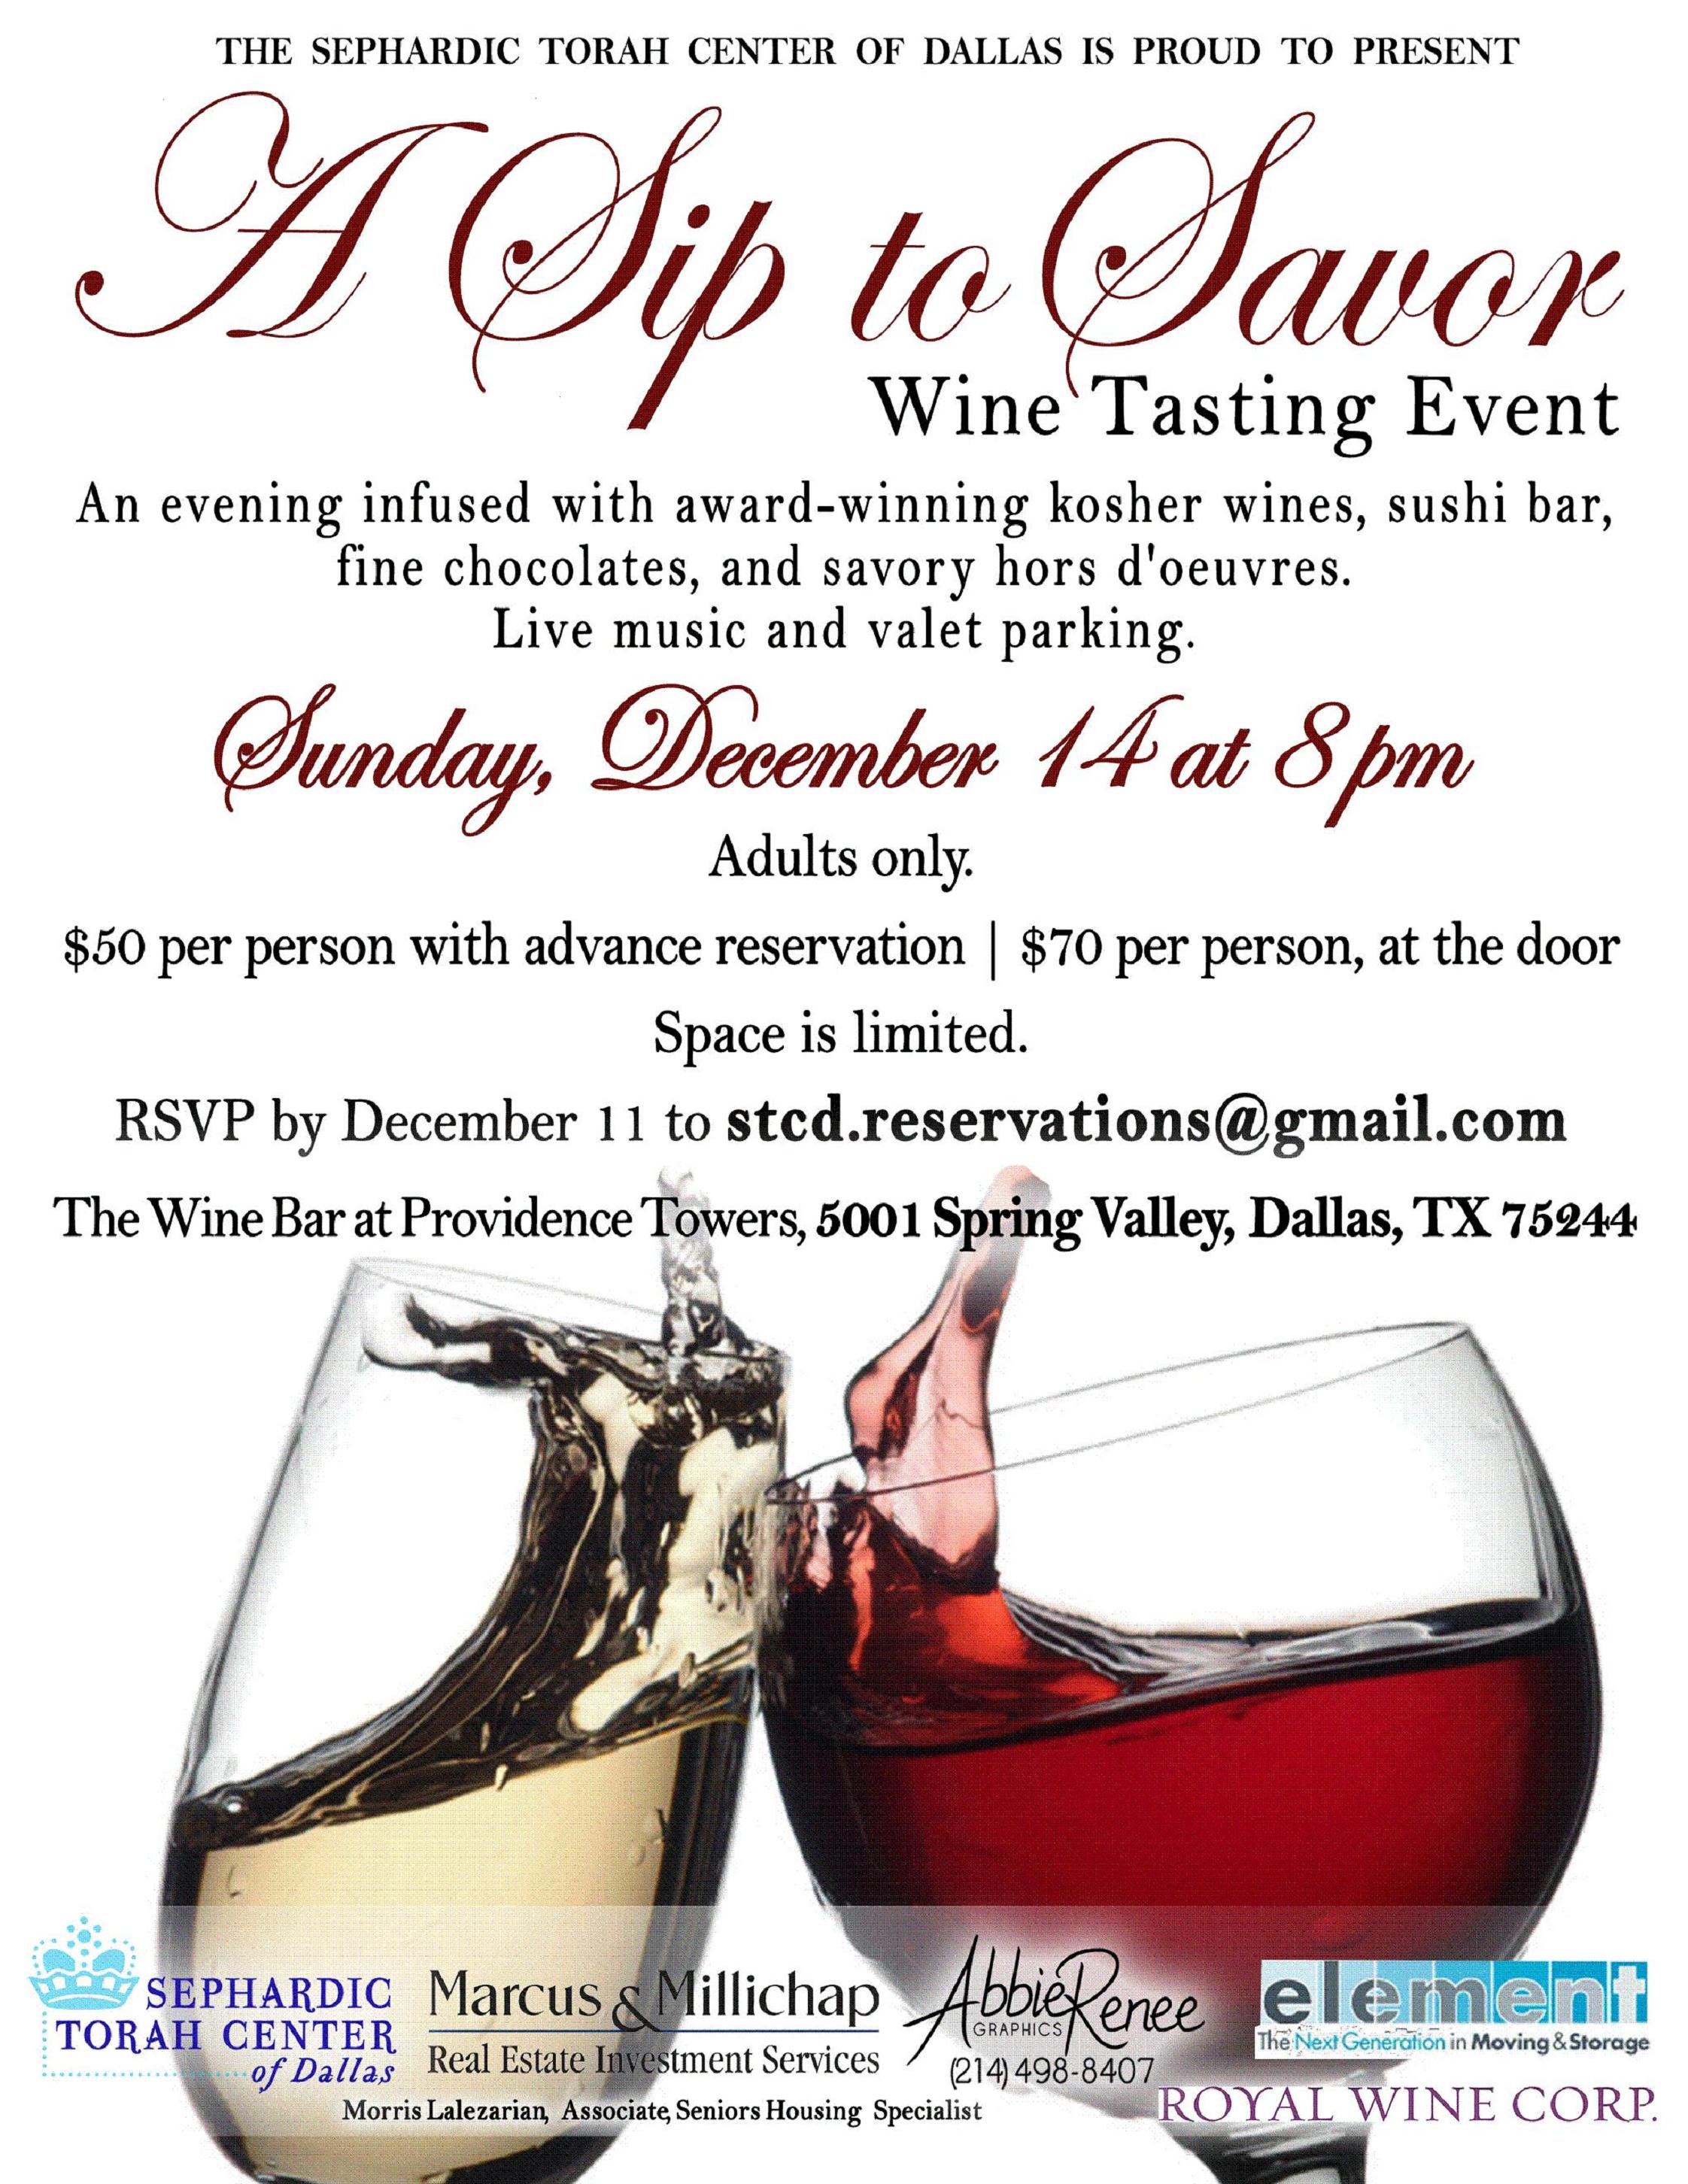 STCD A Sip to Savor Event Dec 14th, 14